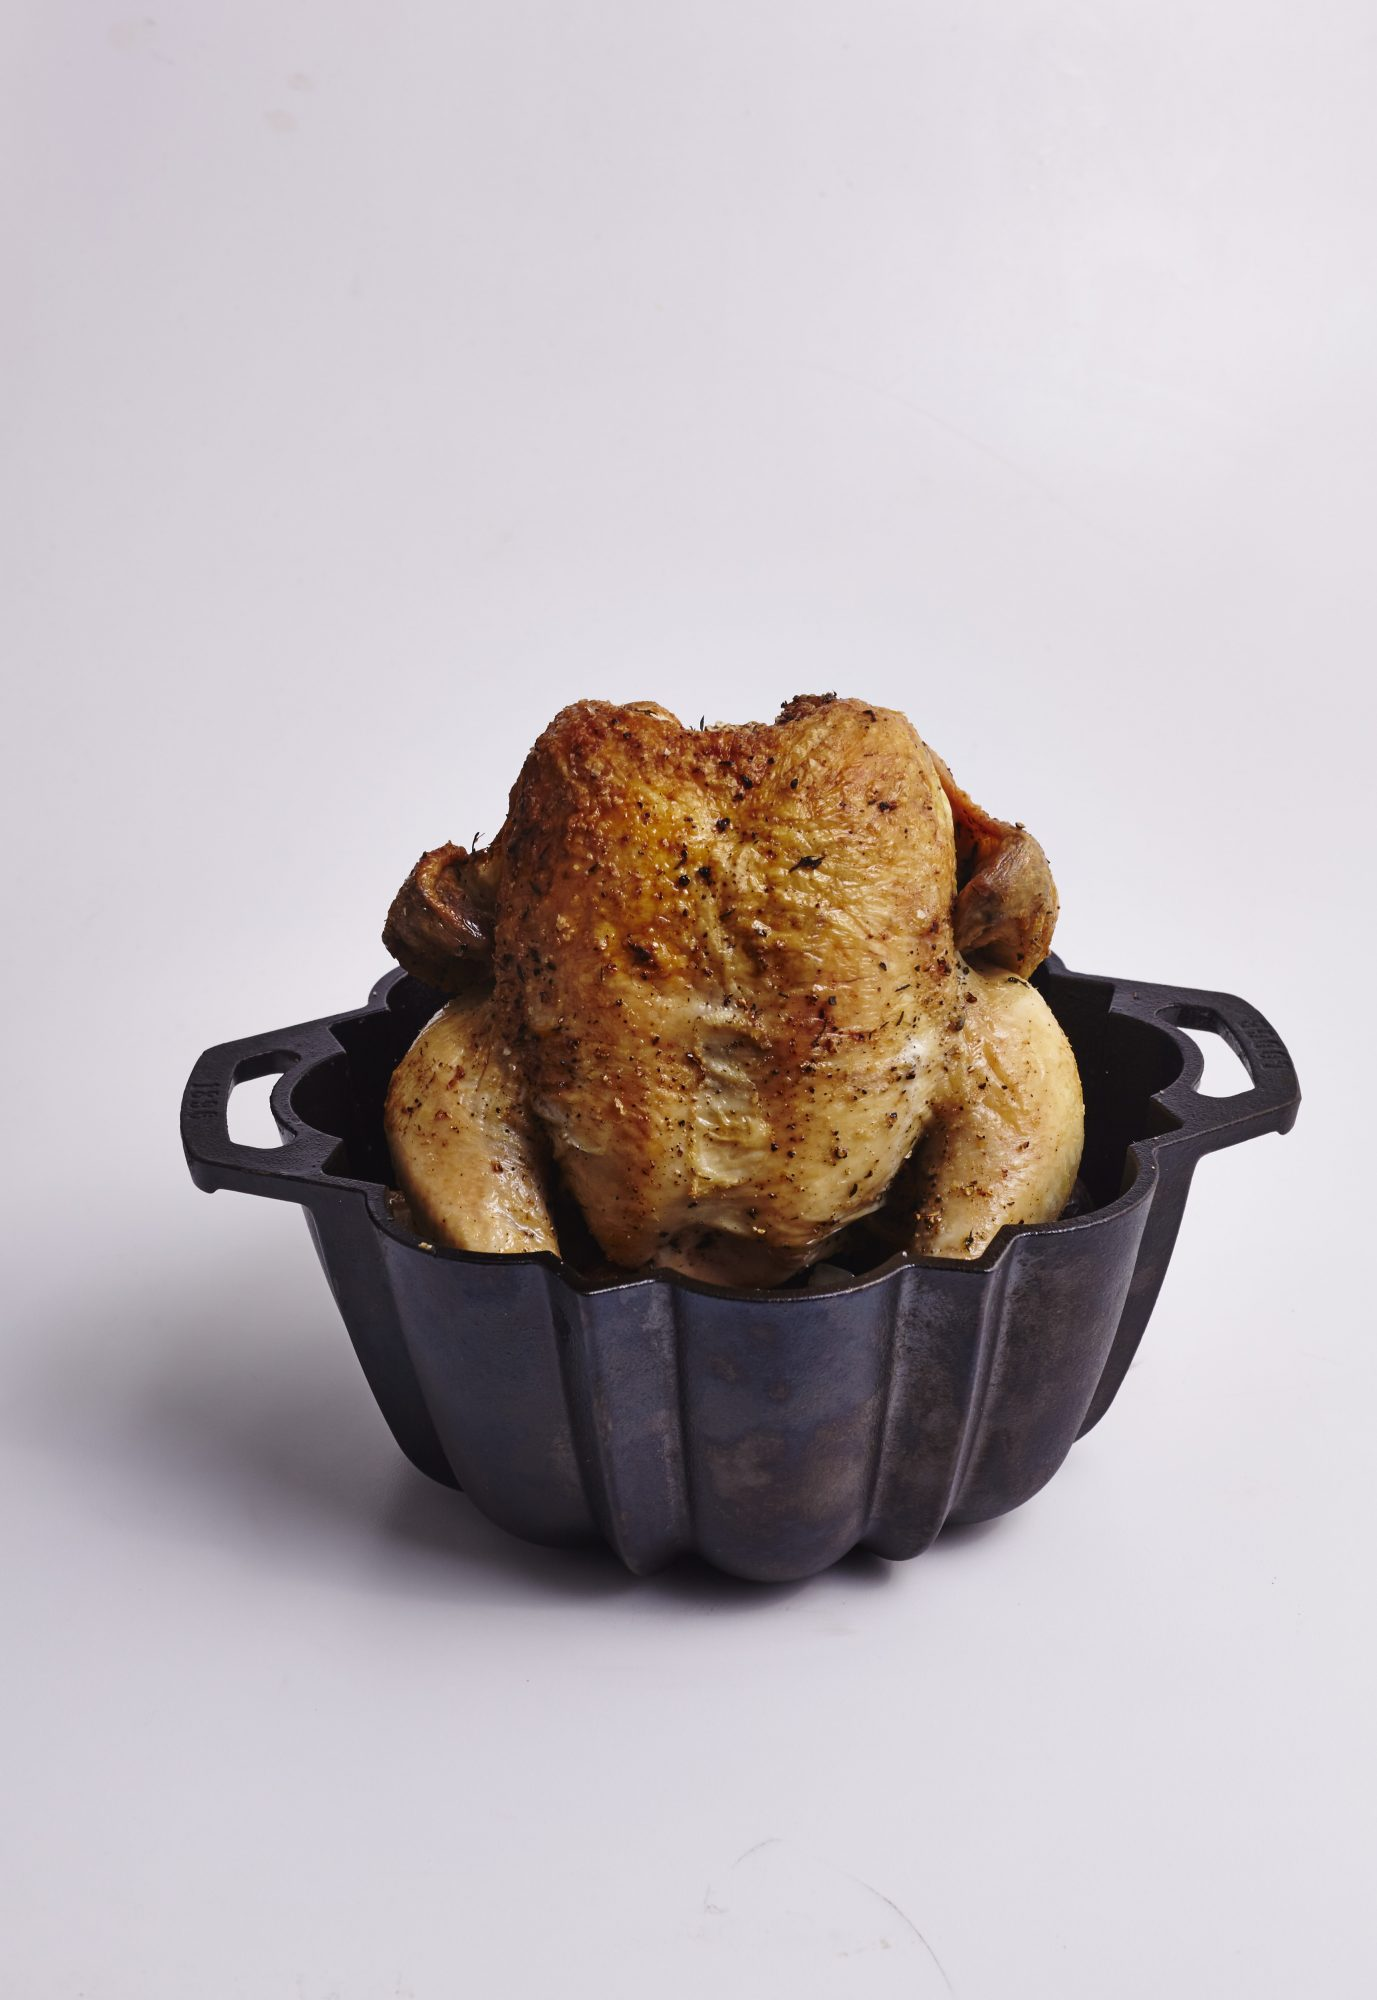 Bundt Pan Roasted Chicken Dinner image